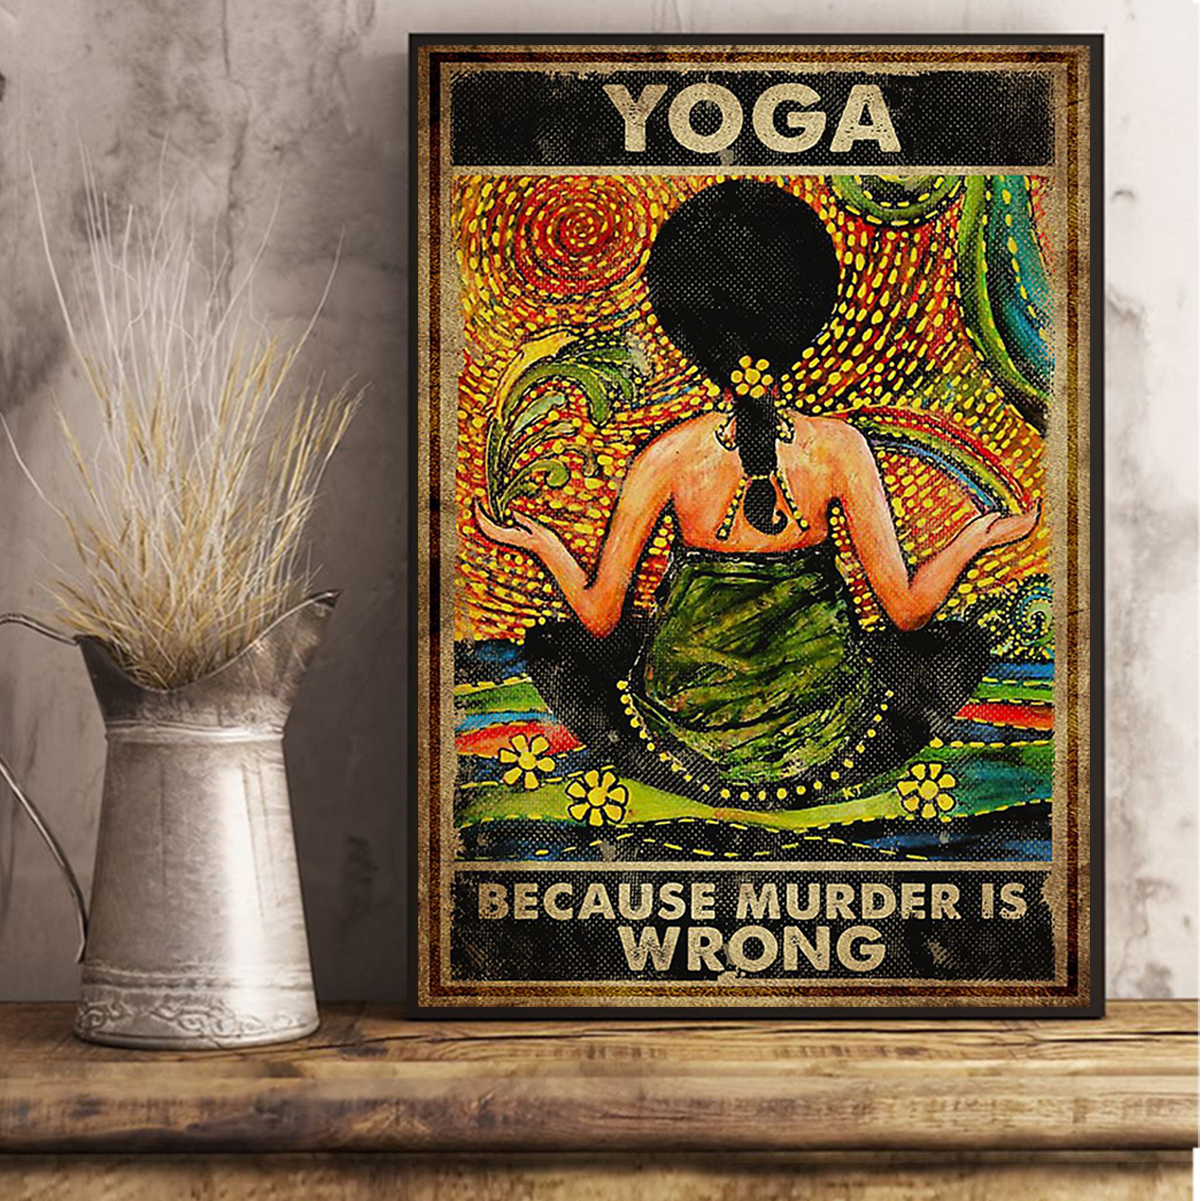 Yoga because murder is wrong poster A2